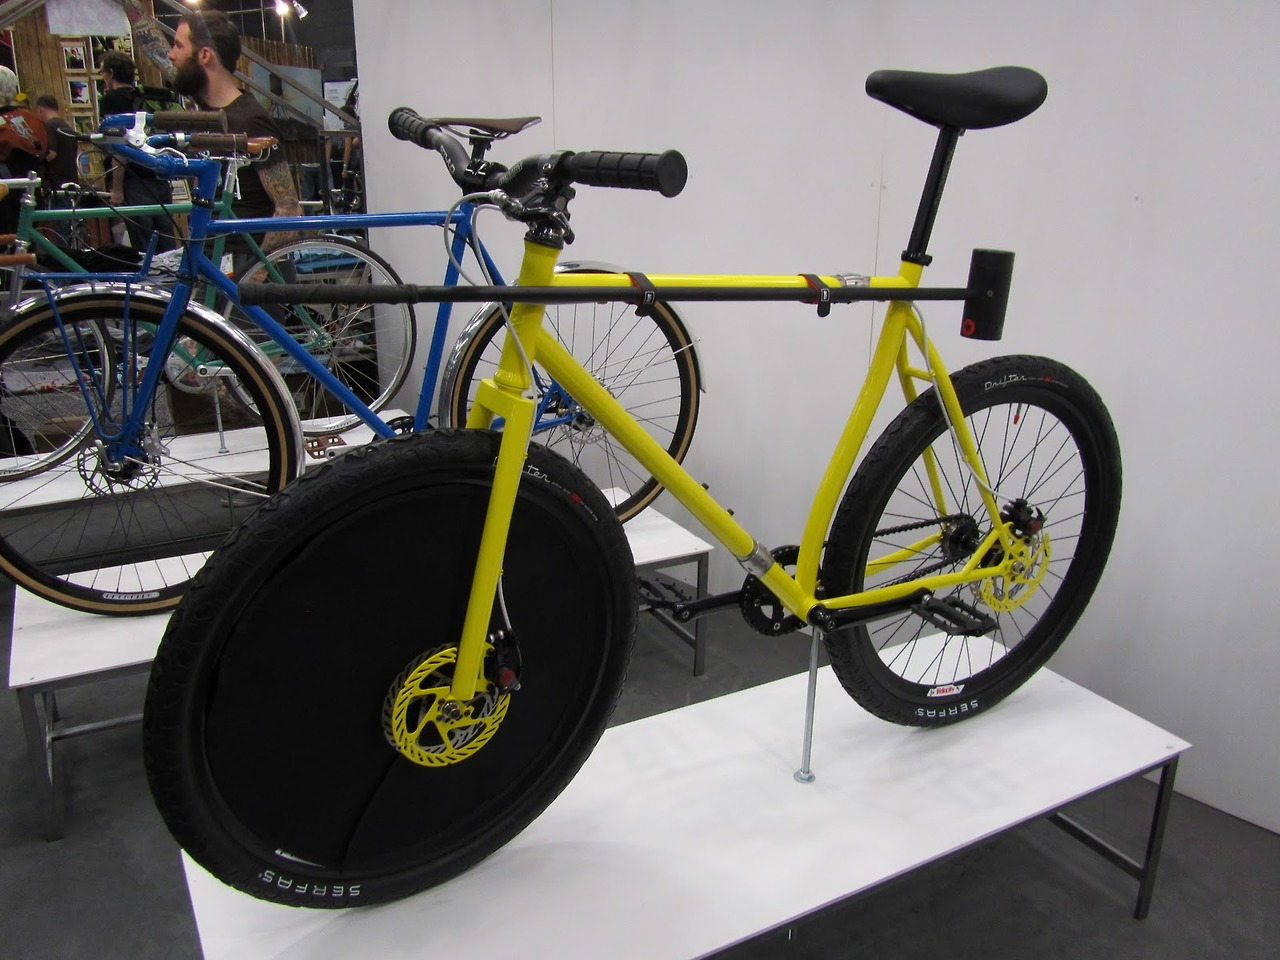 Sweet looking bicycle hockey bike. Not sure how long those discs will stay yellow though…